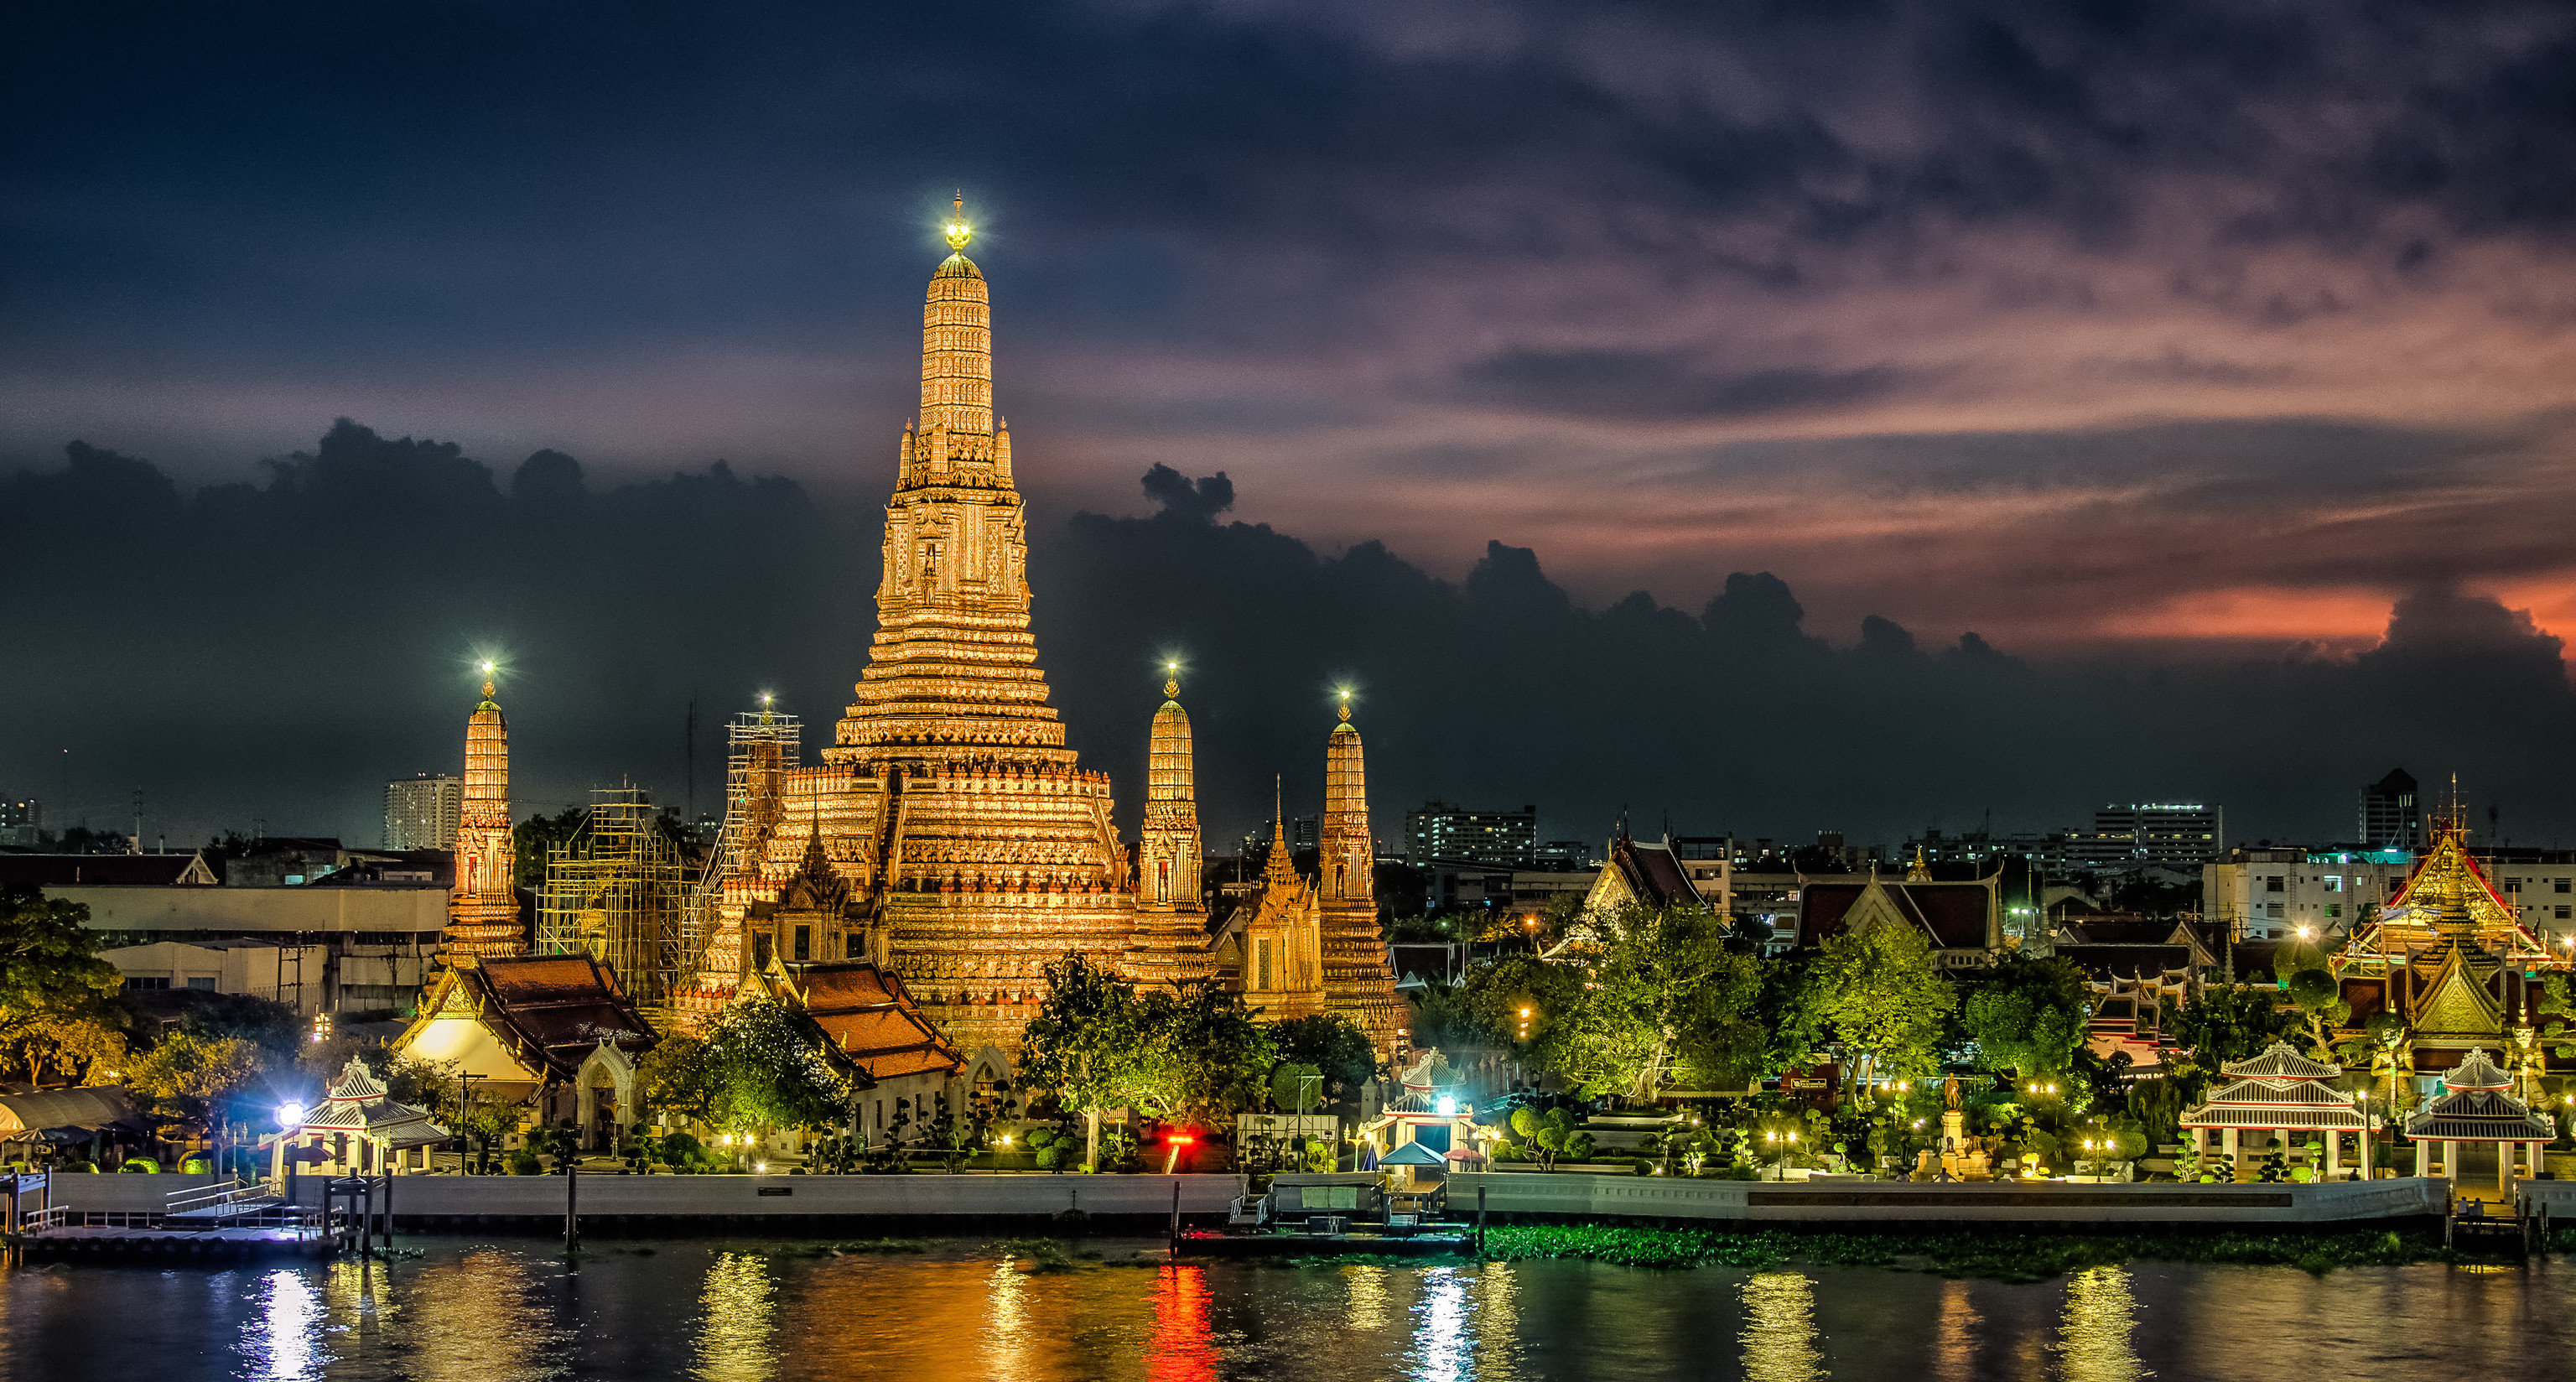 Hotels water sky outdoor River landmark night reflection City cityscape human settlement evening temple skyline dusk pagoda place of worship tower wat cloudy